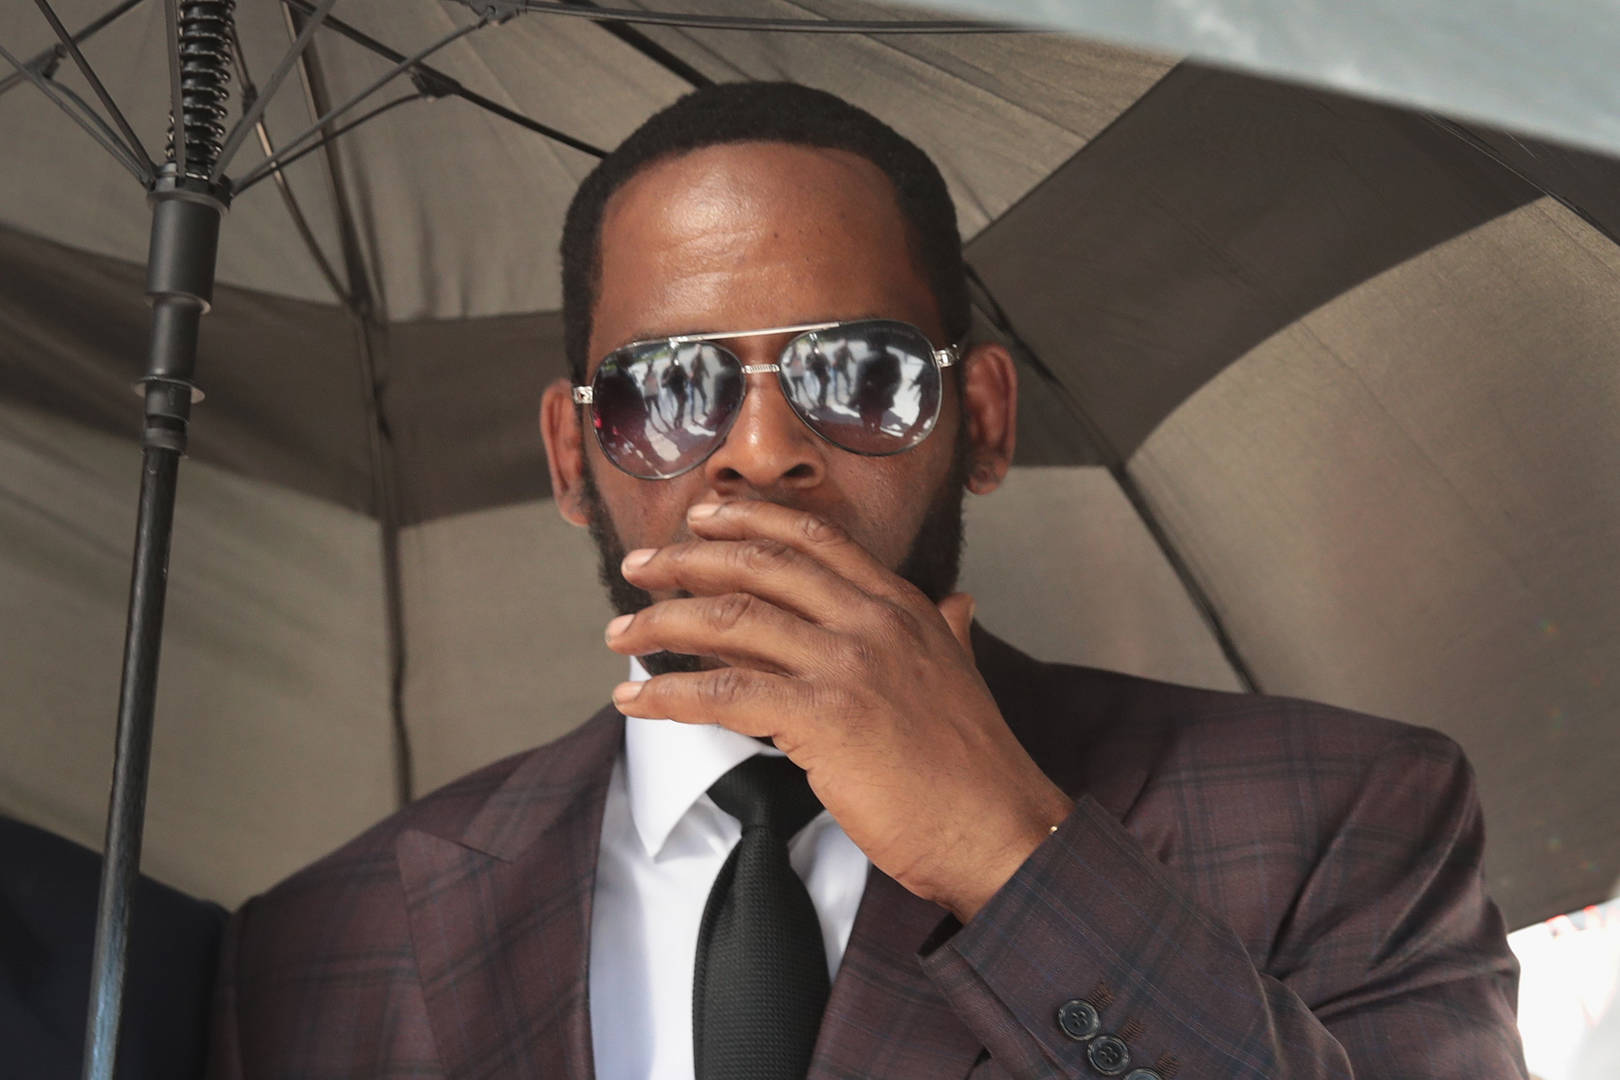 R. Kelly's Publicist Run Up On By Joycelyn Savage's Father During Press Conference